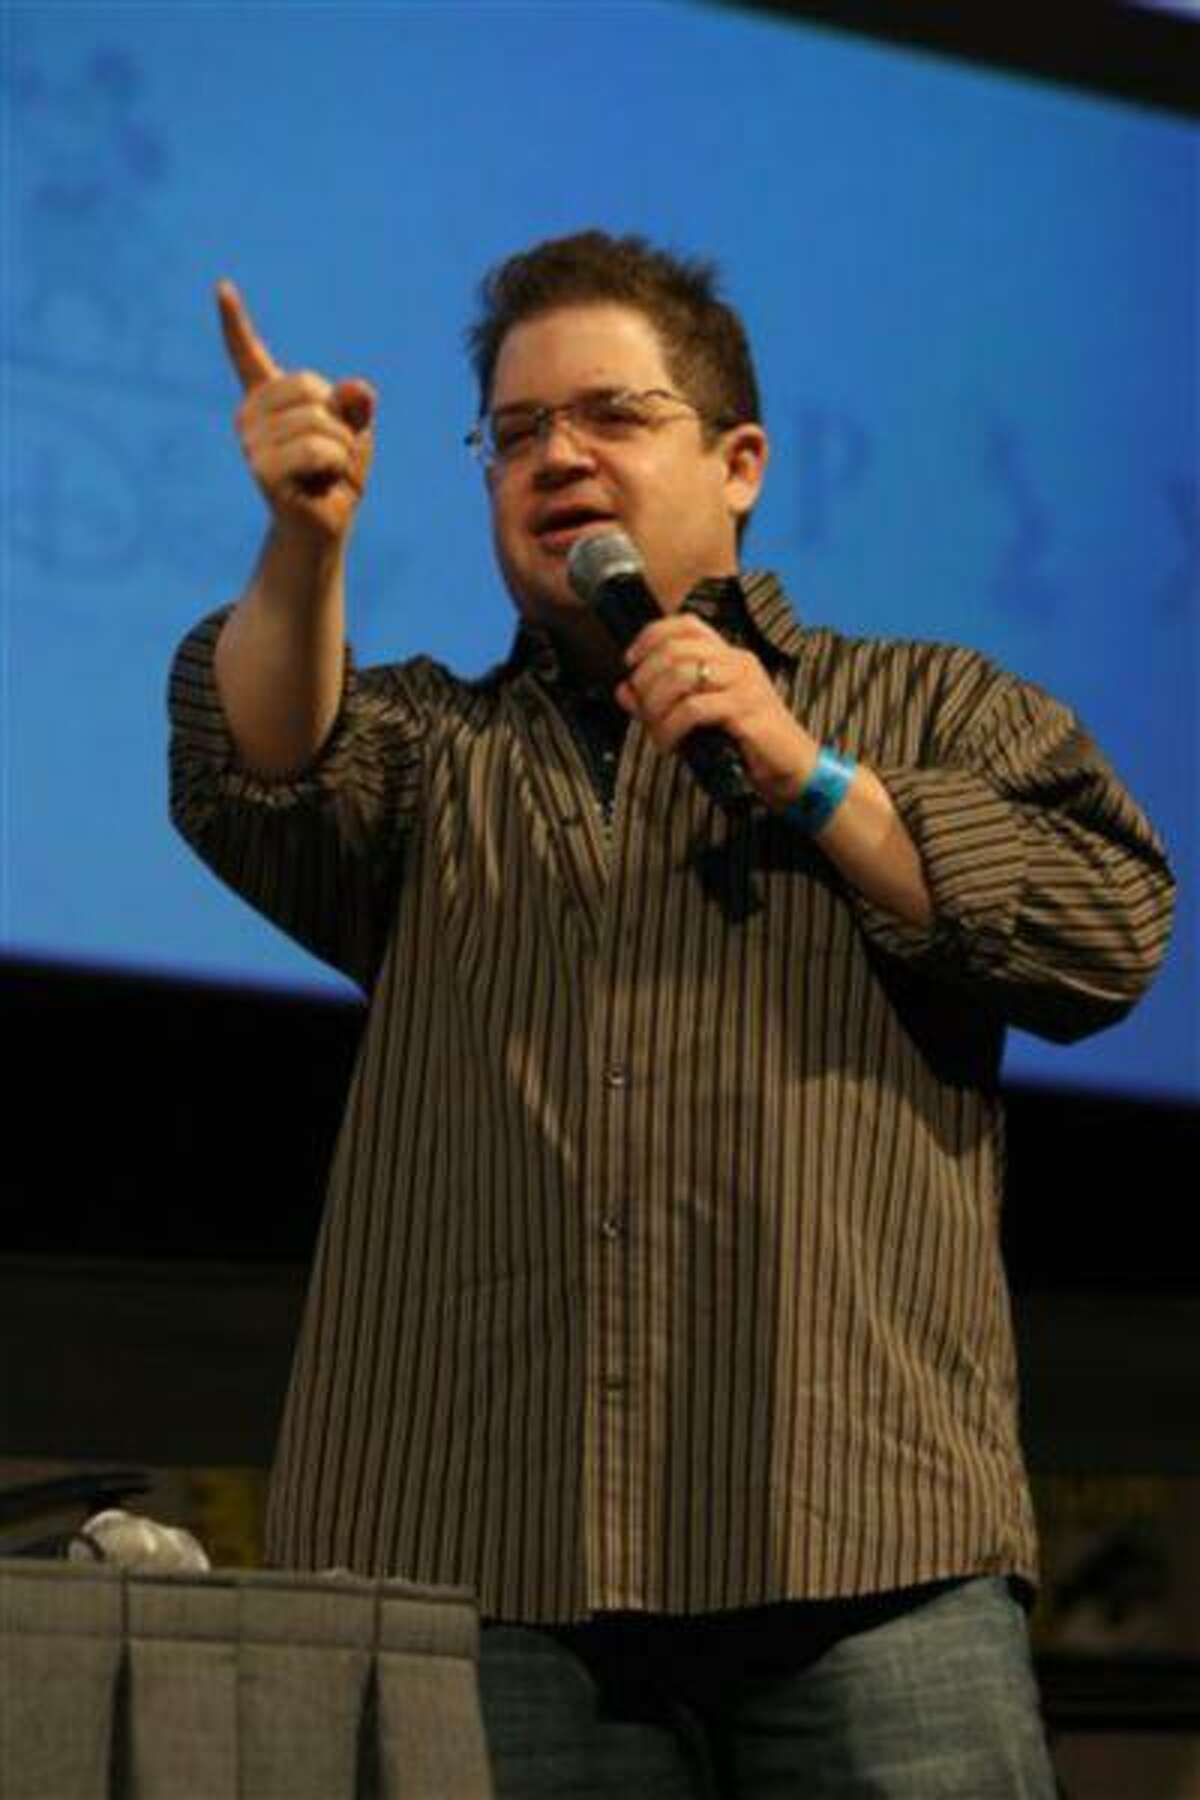 """FILE - This July 24, 2009 file photo shows Patton Oswalt at the Disney Animation Panel at Comic Con at the San Diego Convention Center in San Diego, Calif. Attending Comic-Con is often a once-in-a-lifetime opportunity for many con-goers, but it's just another summertime destination for the likes of """"The Wolverine"""" star Hugh Jackman, geeky funnyman Oswalt and """"The Amazing Spider-Man"""" sequel writers Alex Kurtzman and Roberto Orci. (Photo by Eric Charbonneau/Invision/AP Images, File)"""